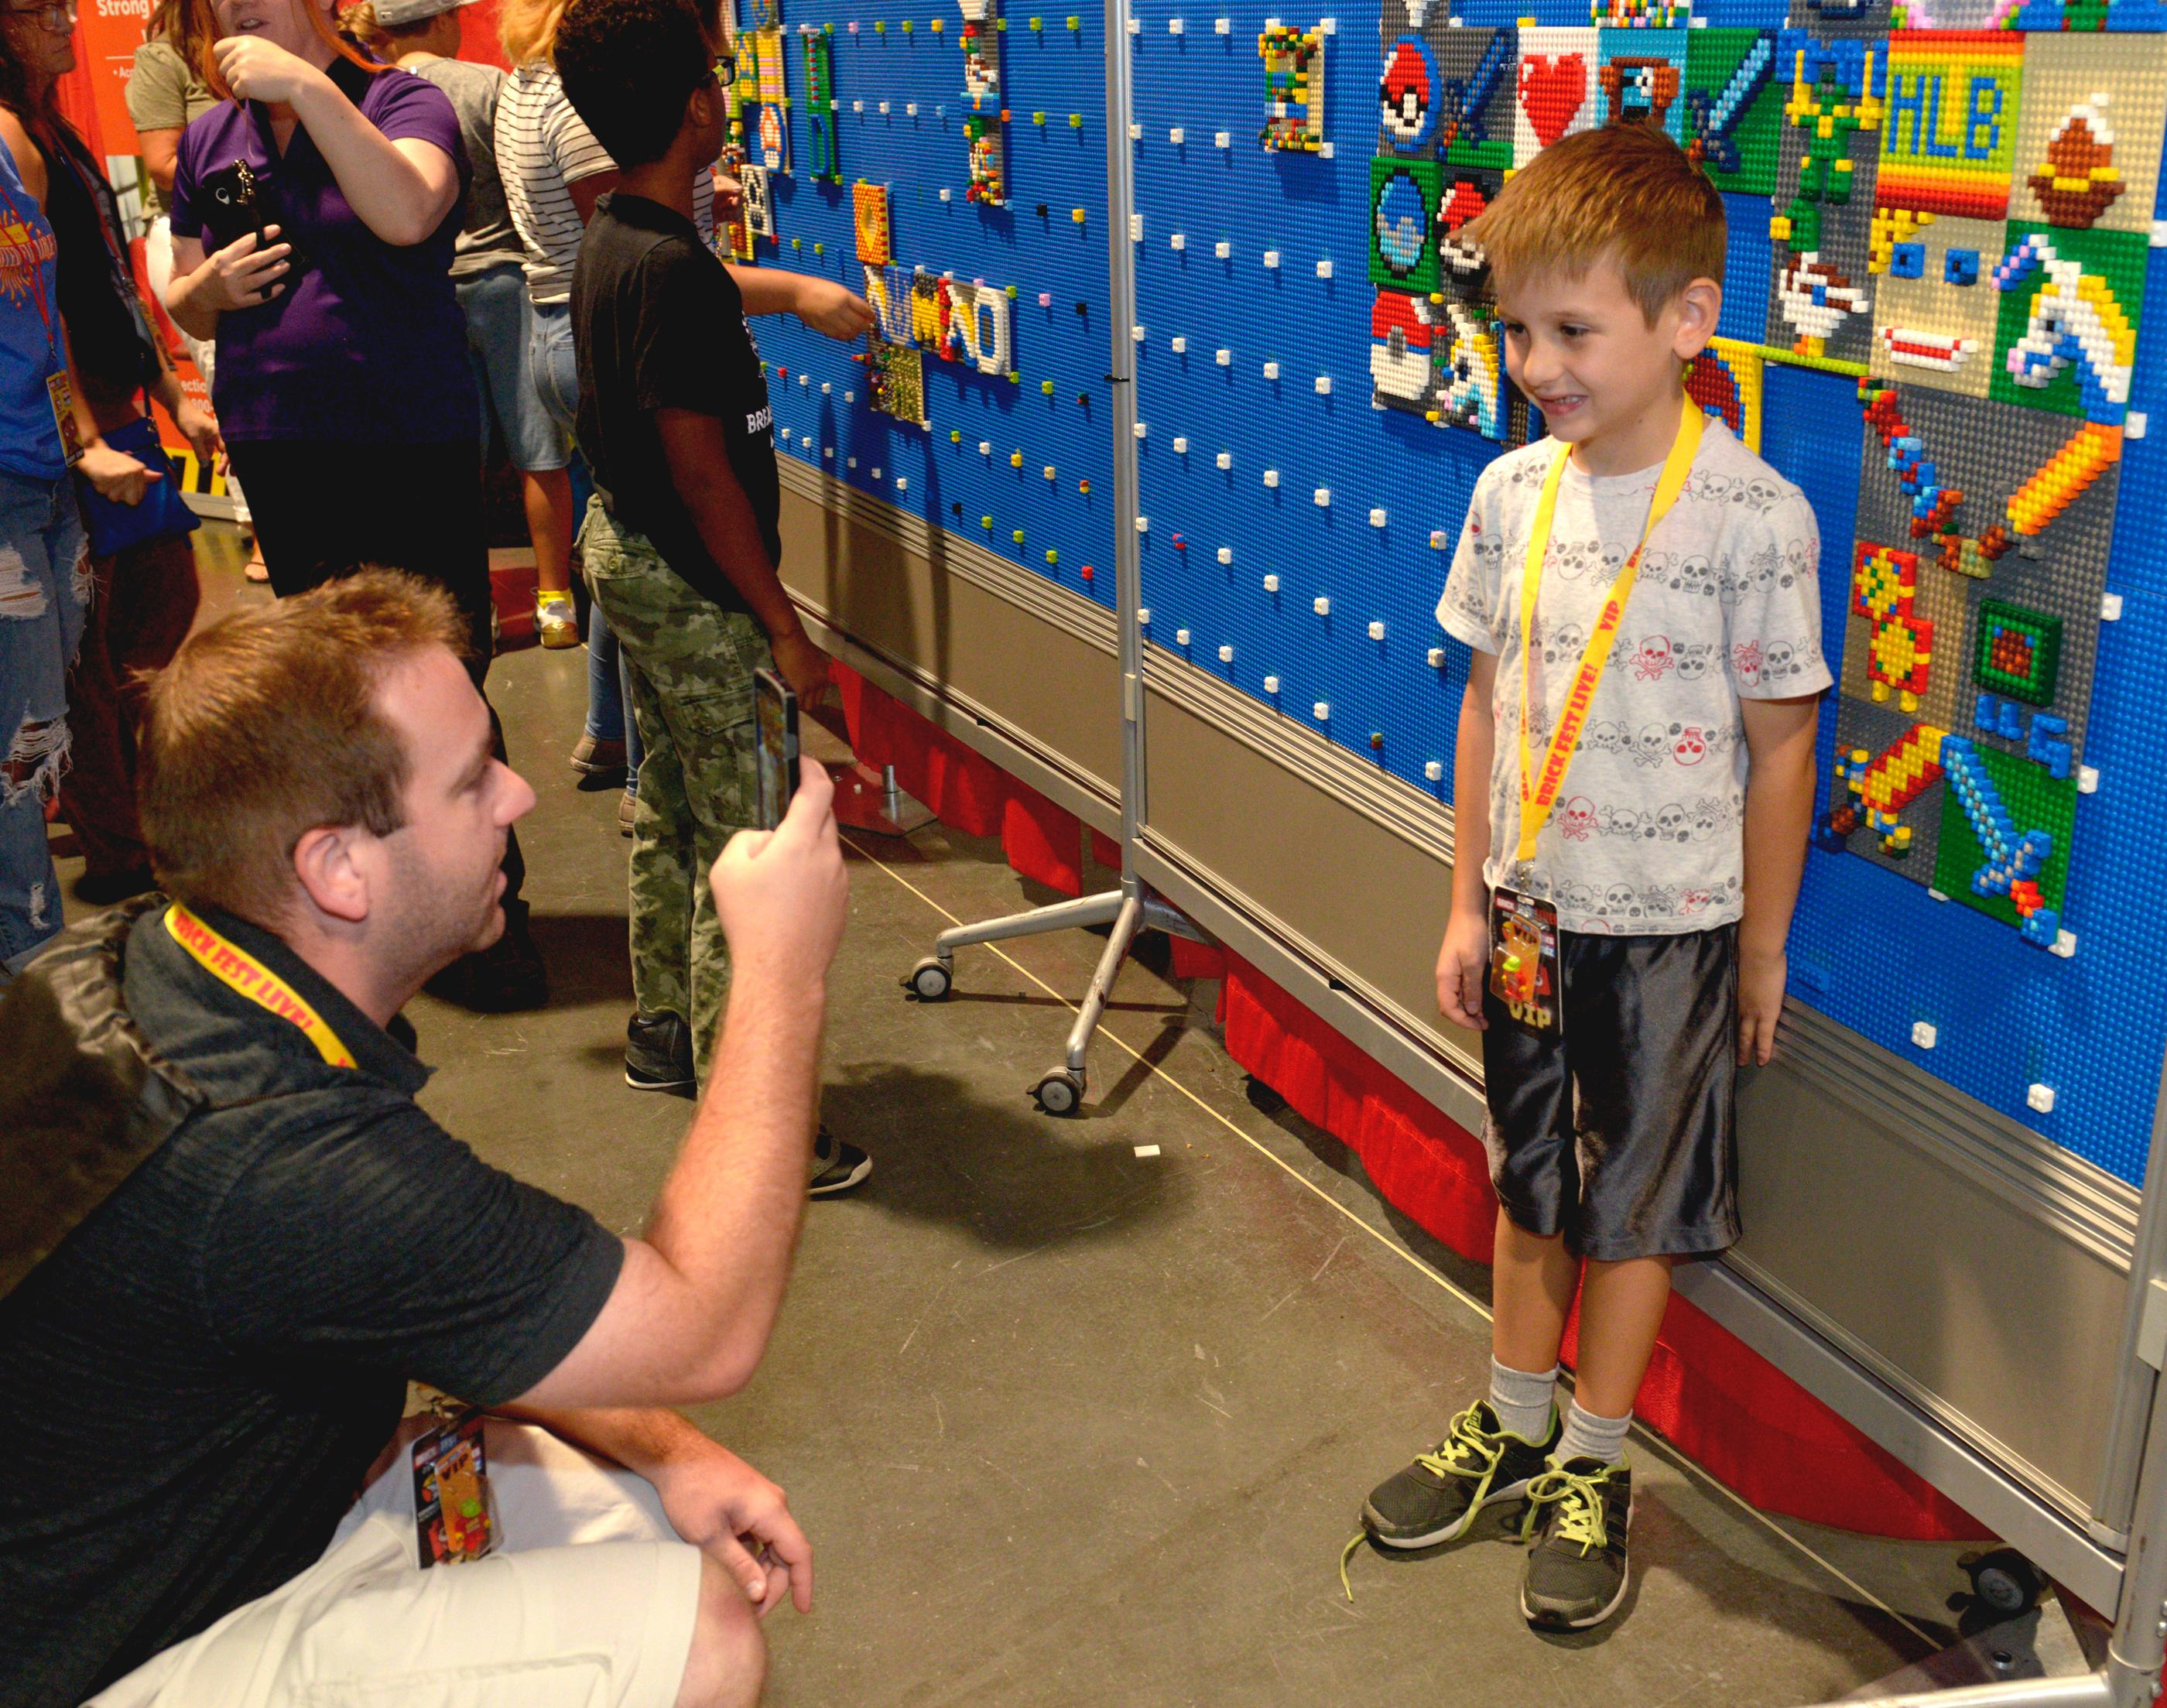 Dad takes a photo as they put their dueling sword mosaics on the Mosaic Wall during the Brick Fest Live Lego Fan Experience at the Las Vegas Convention Center, September 9, 2017. [Glenn Pinkerton/Las Vegas News Bureau]